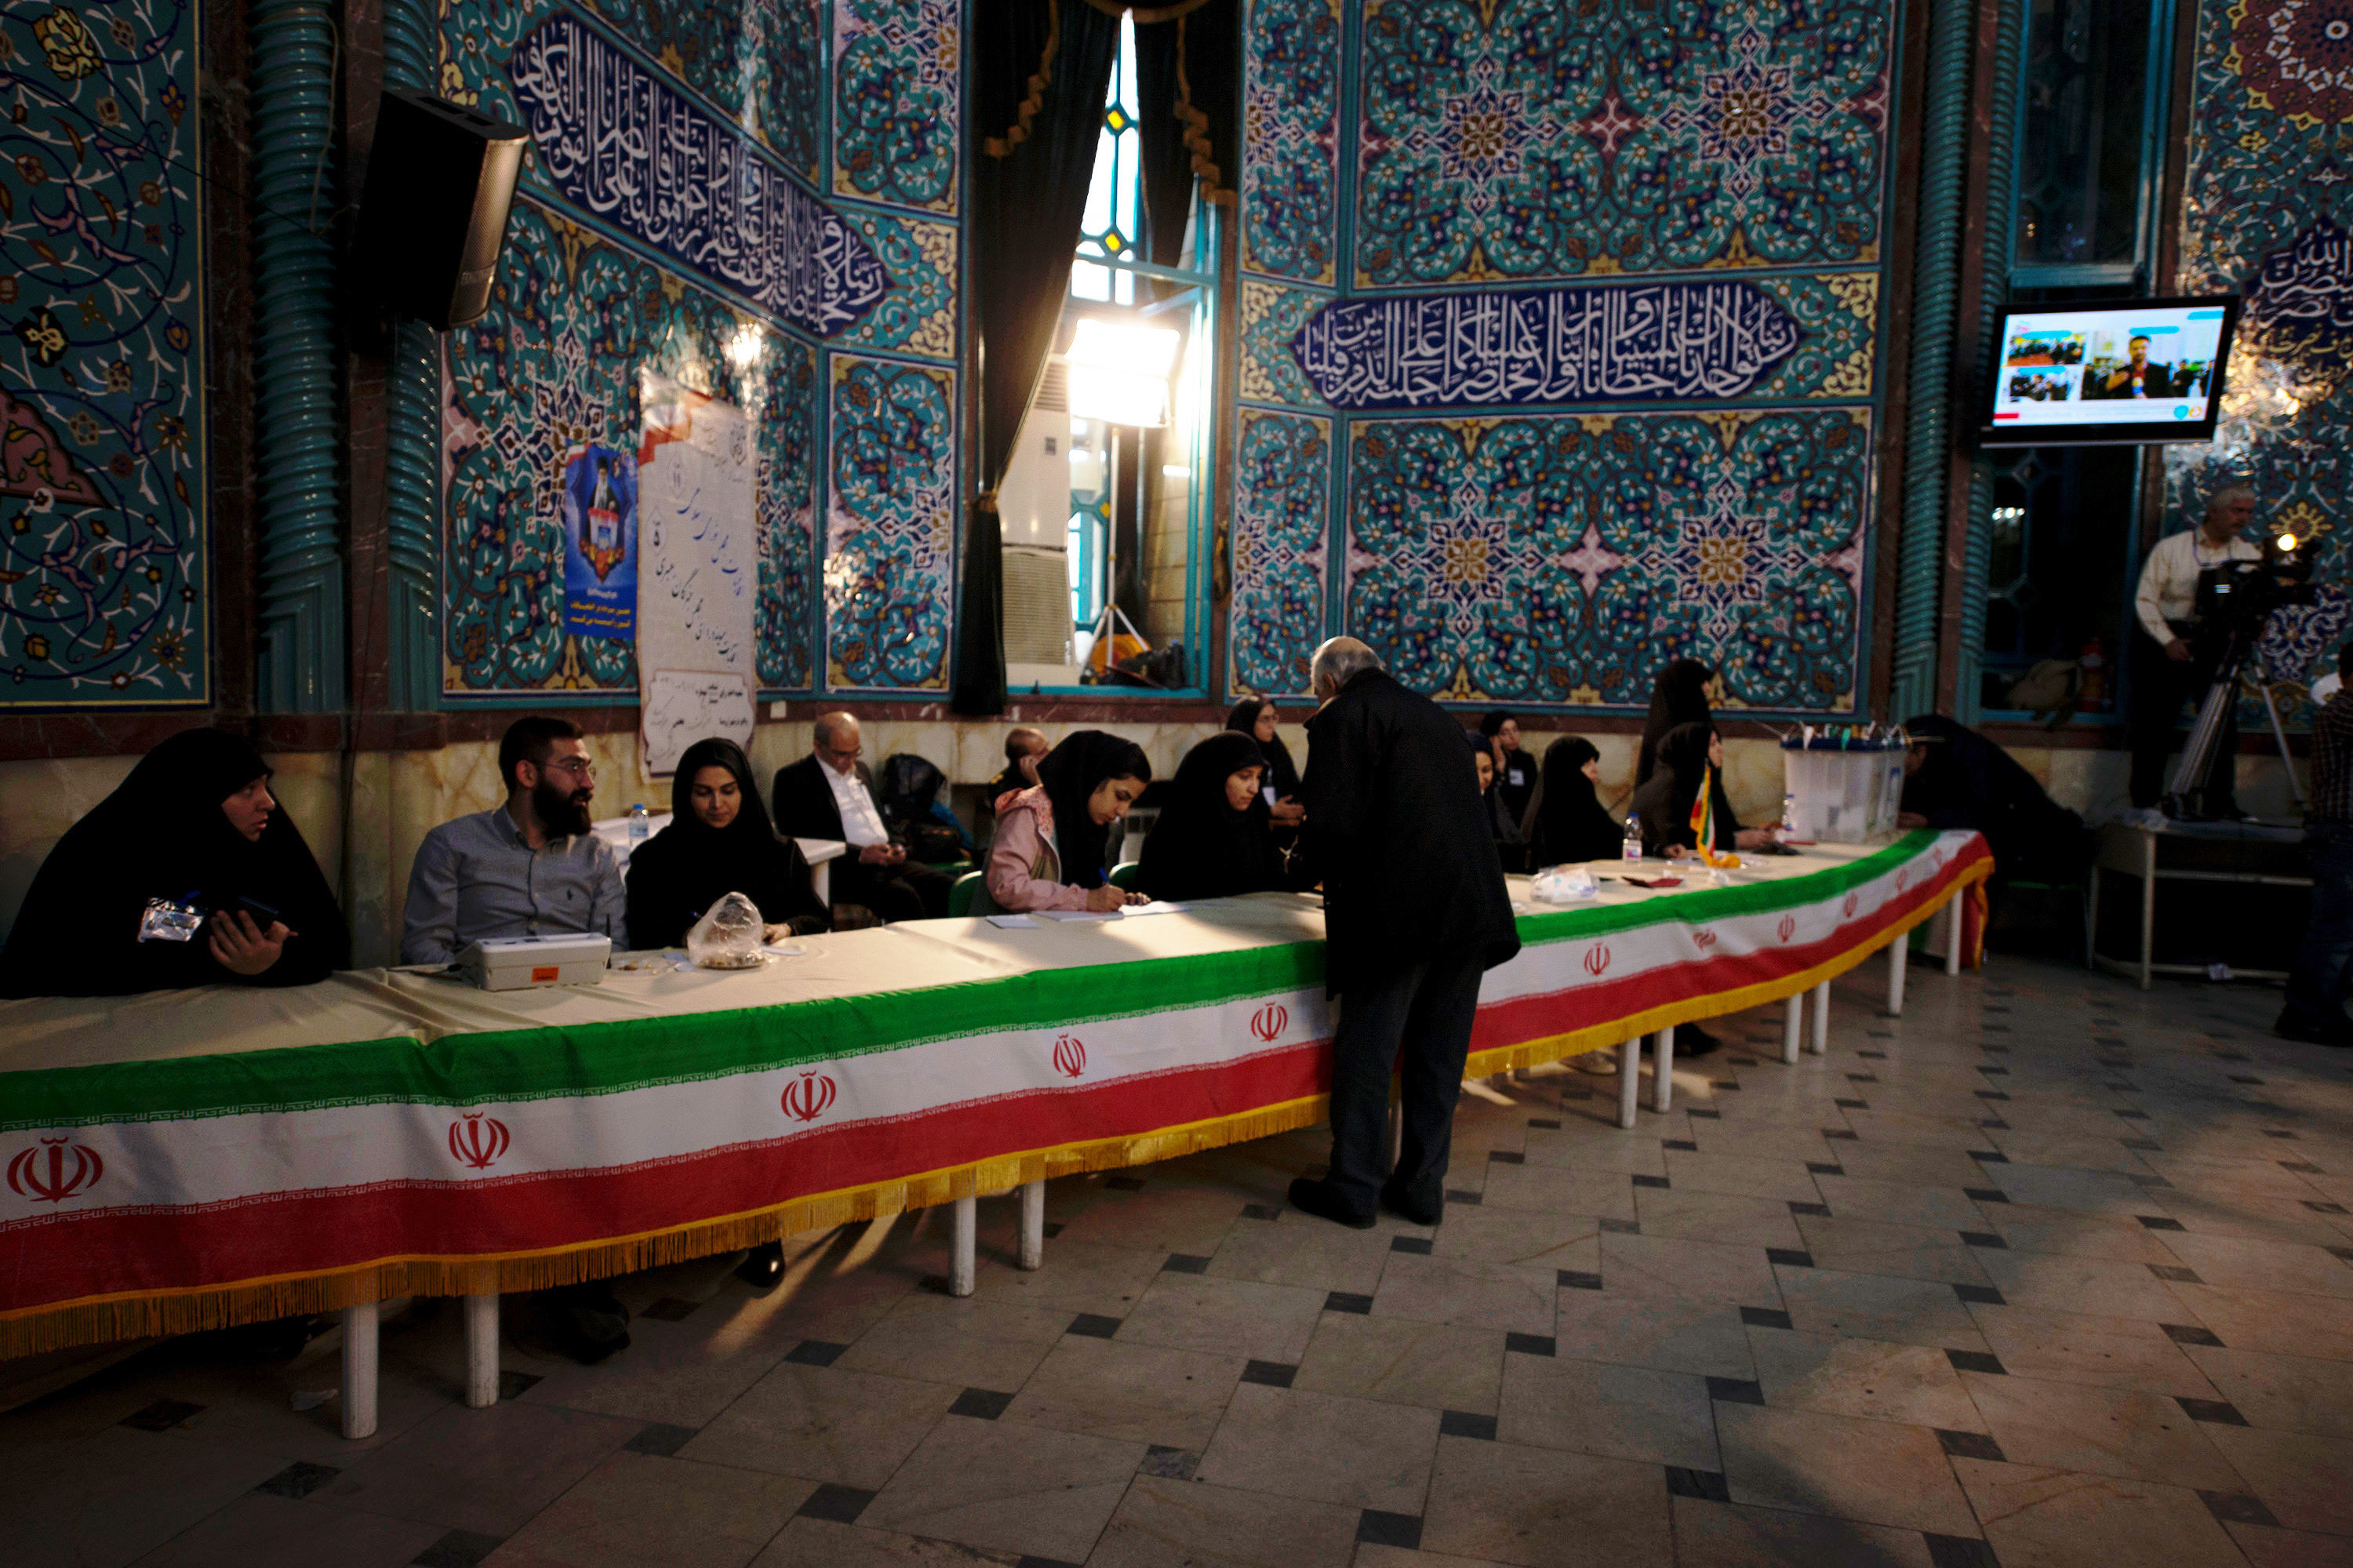 Iranians Vote In Parliamentary Election, After 1 Week Of Campaigning